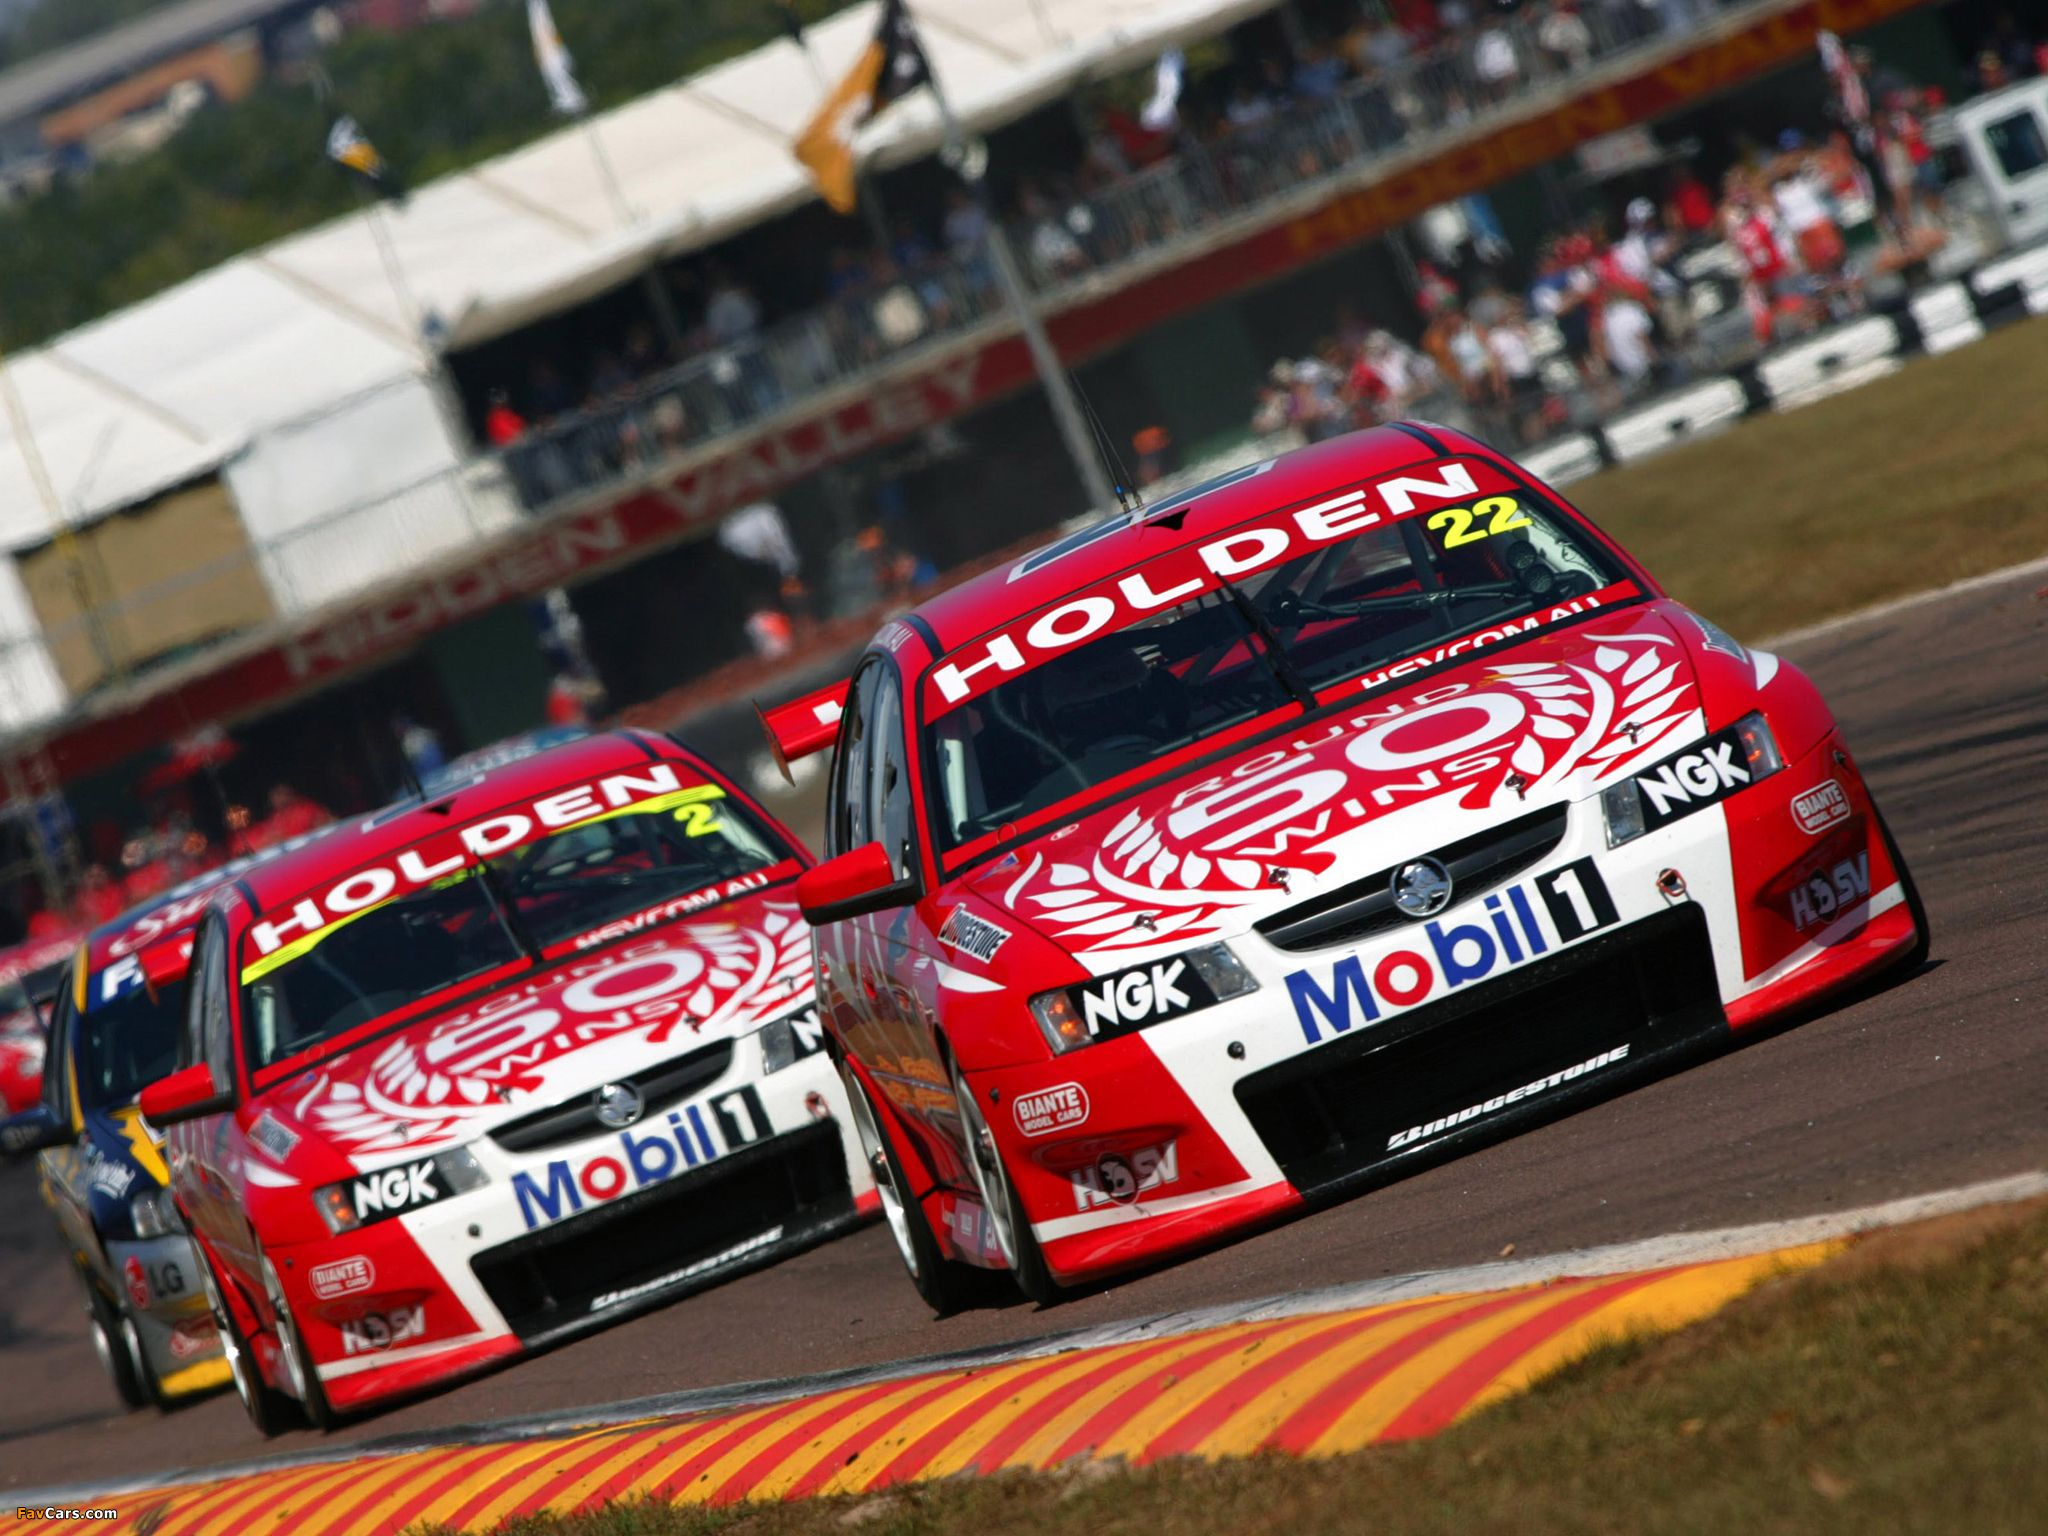 Holden Wallpapers Wallpaperup Images Wallpapers Super Cars V8